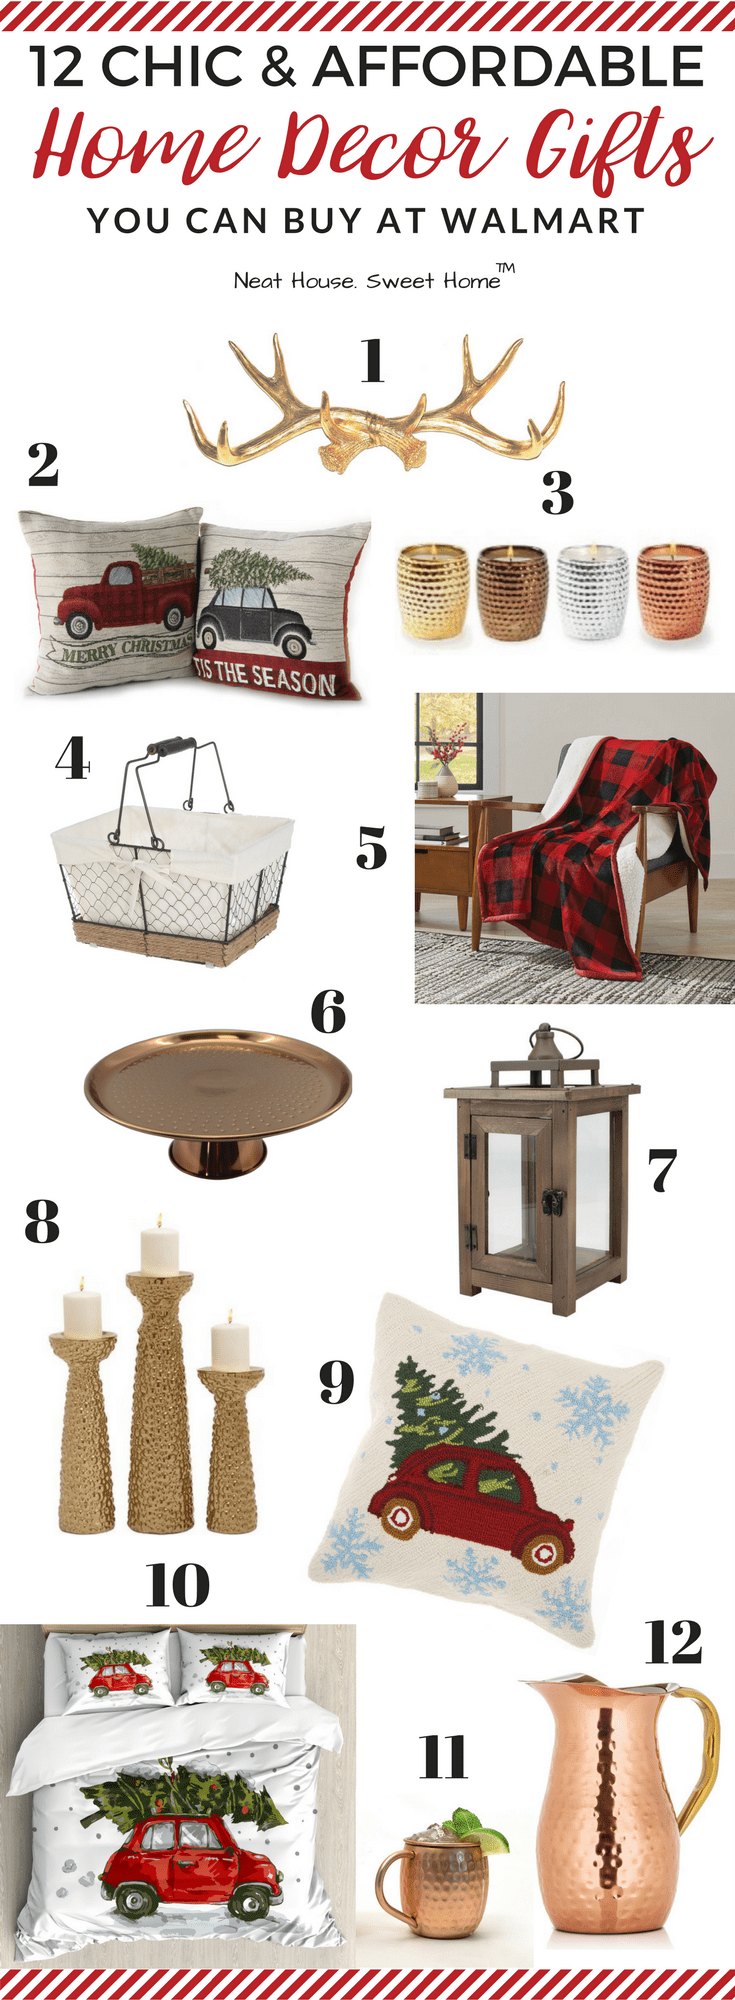 Home Decor Gift Ideas Part - 19: ... Home Decor Gift Ideas From Walmart. Rustic Farmhouse, Gold Or Copper,  Chicken Wire Or Ceramic, Deer Antlers, Buffalo